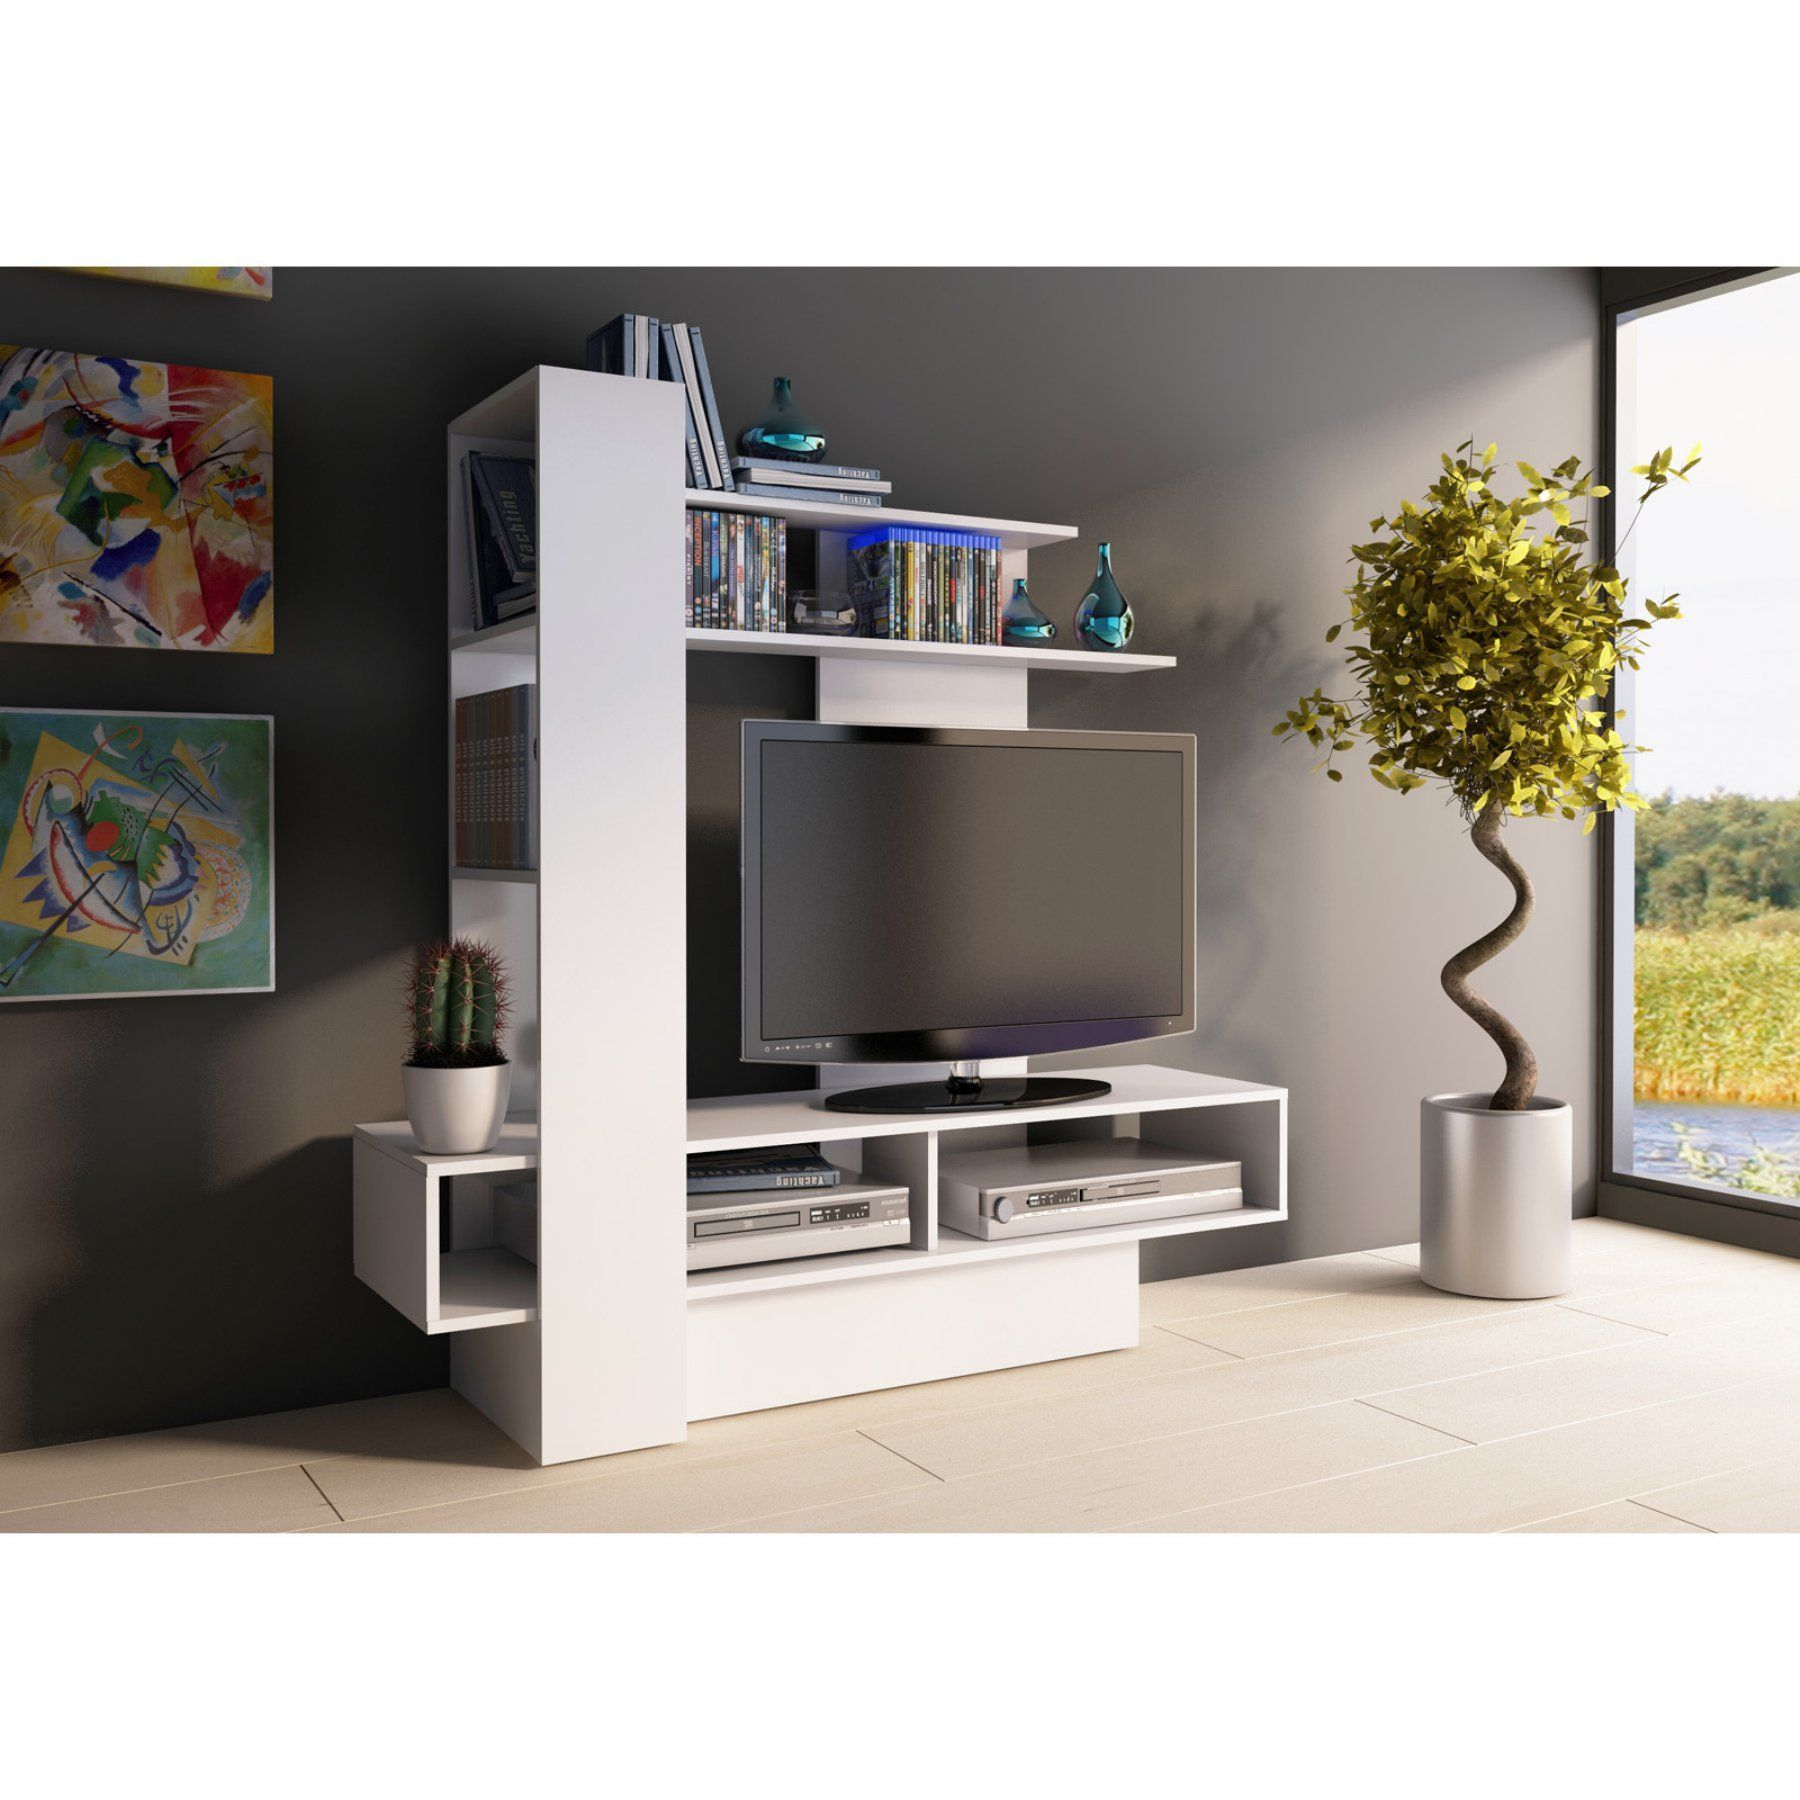 Trasman Sky Wall Unit Tv Stand 4010 Floating Entertainment